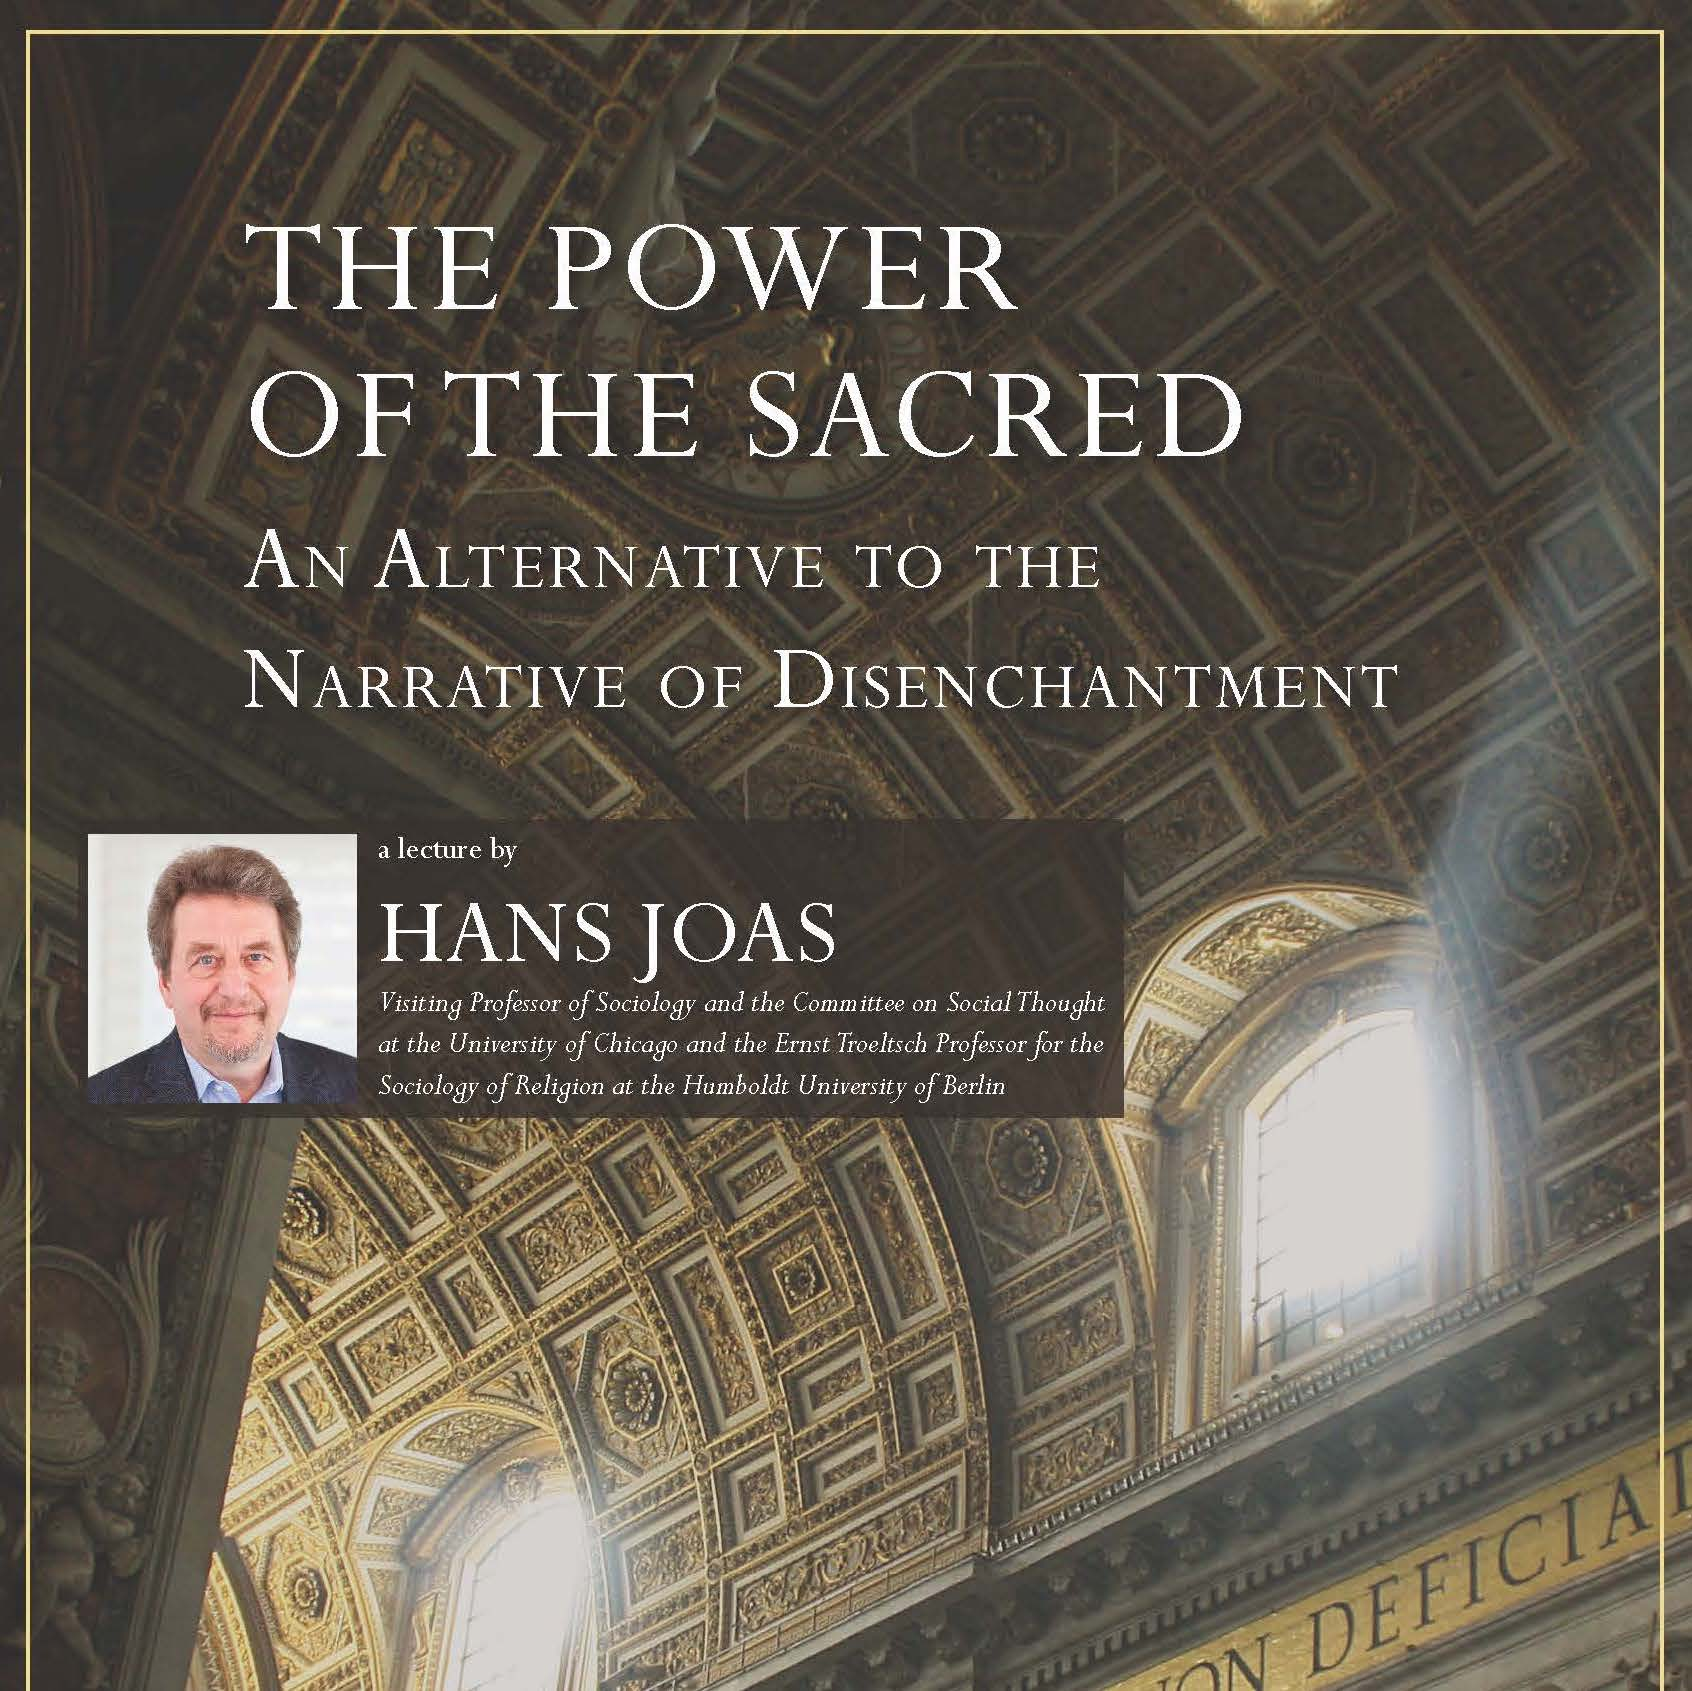 Hans Joas lecture on Oct. 26